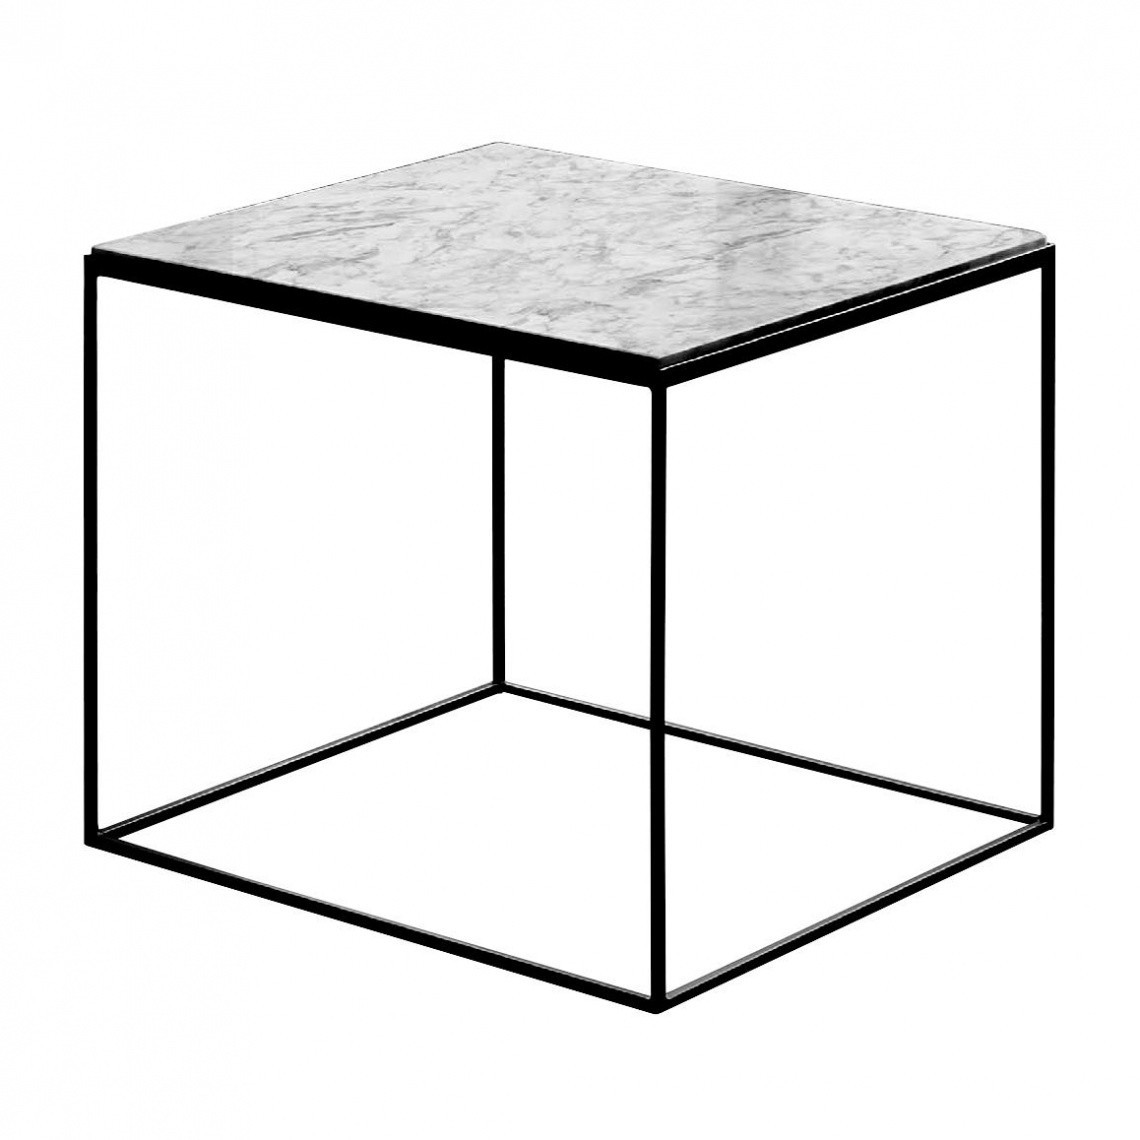 slim marble side table 54x54x48cm